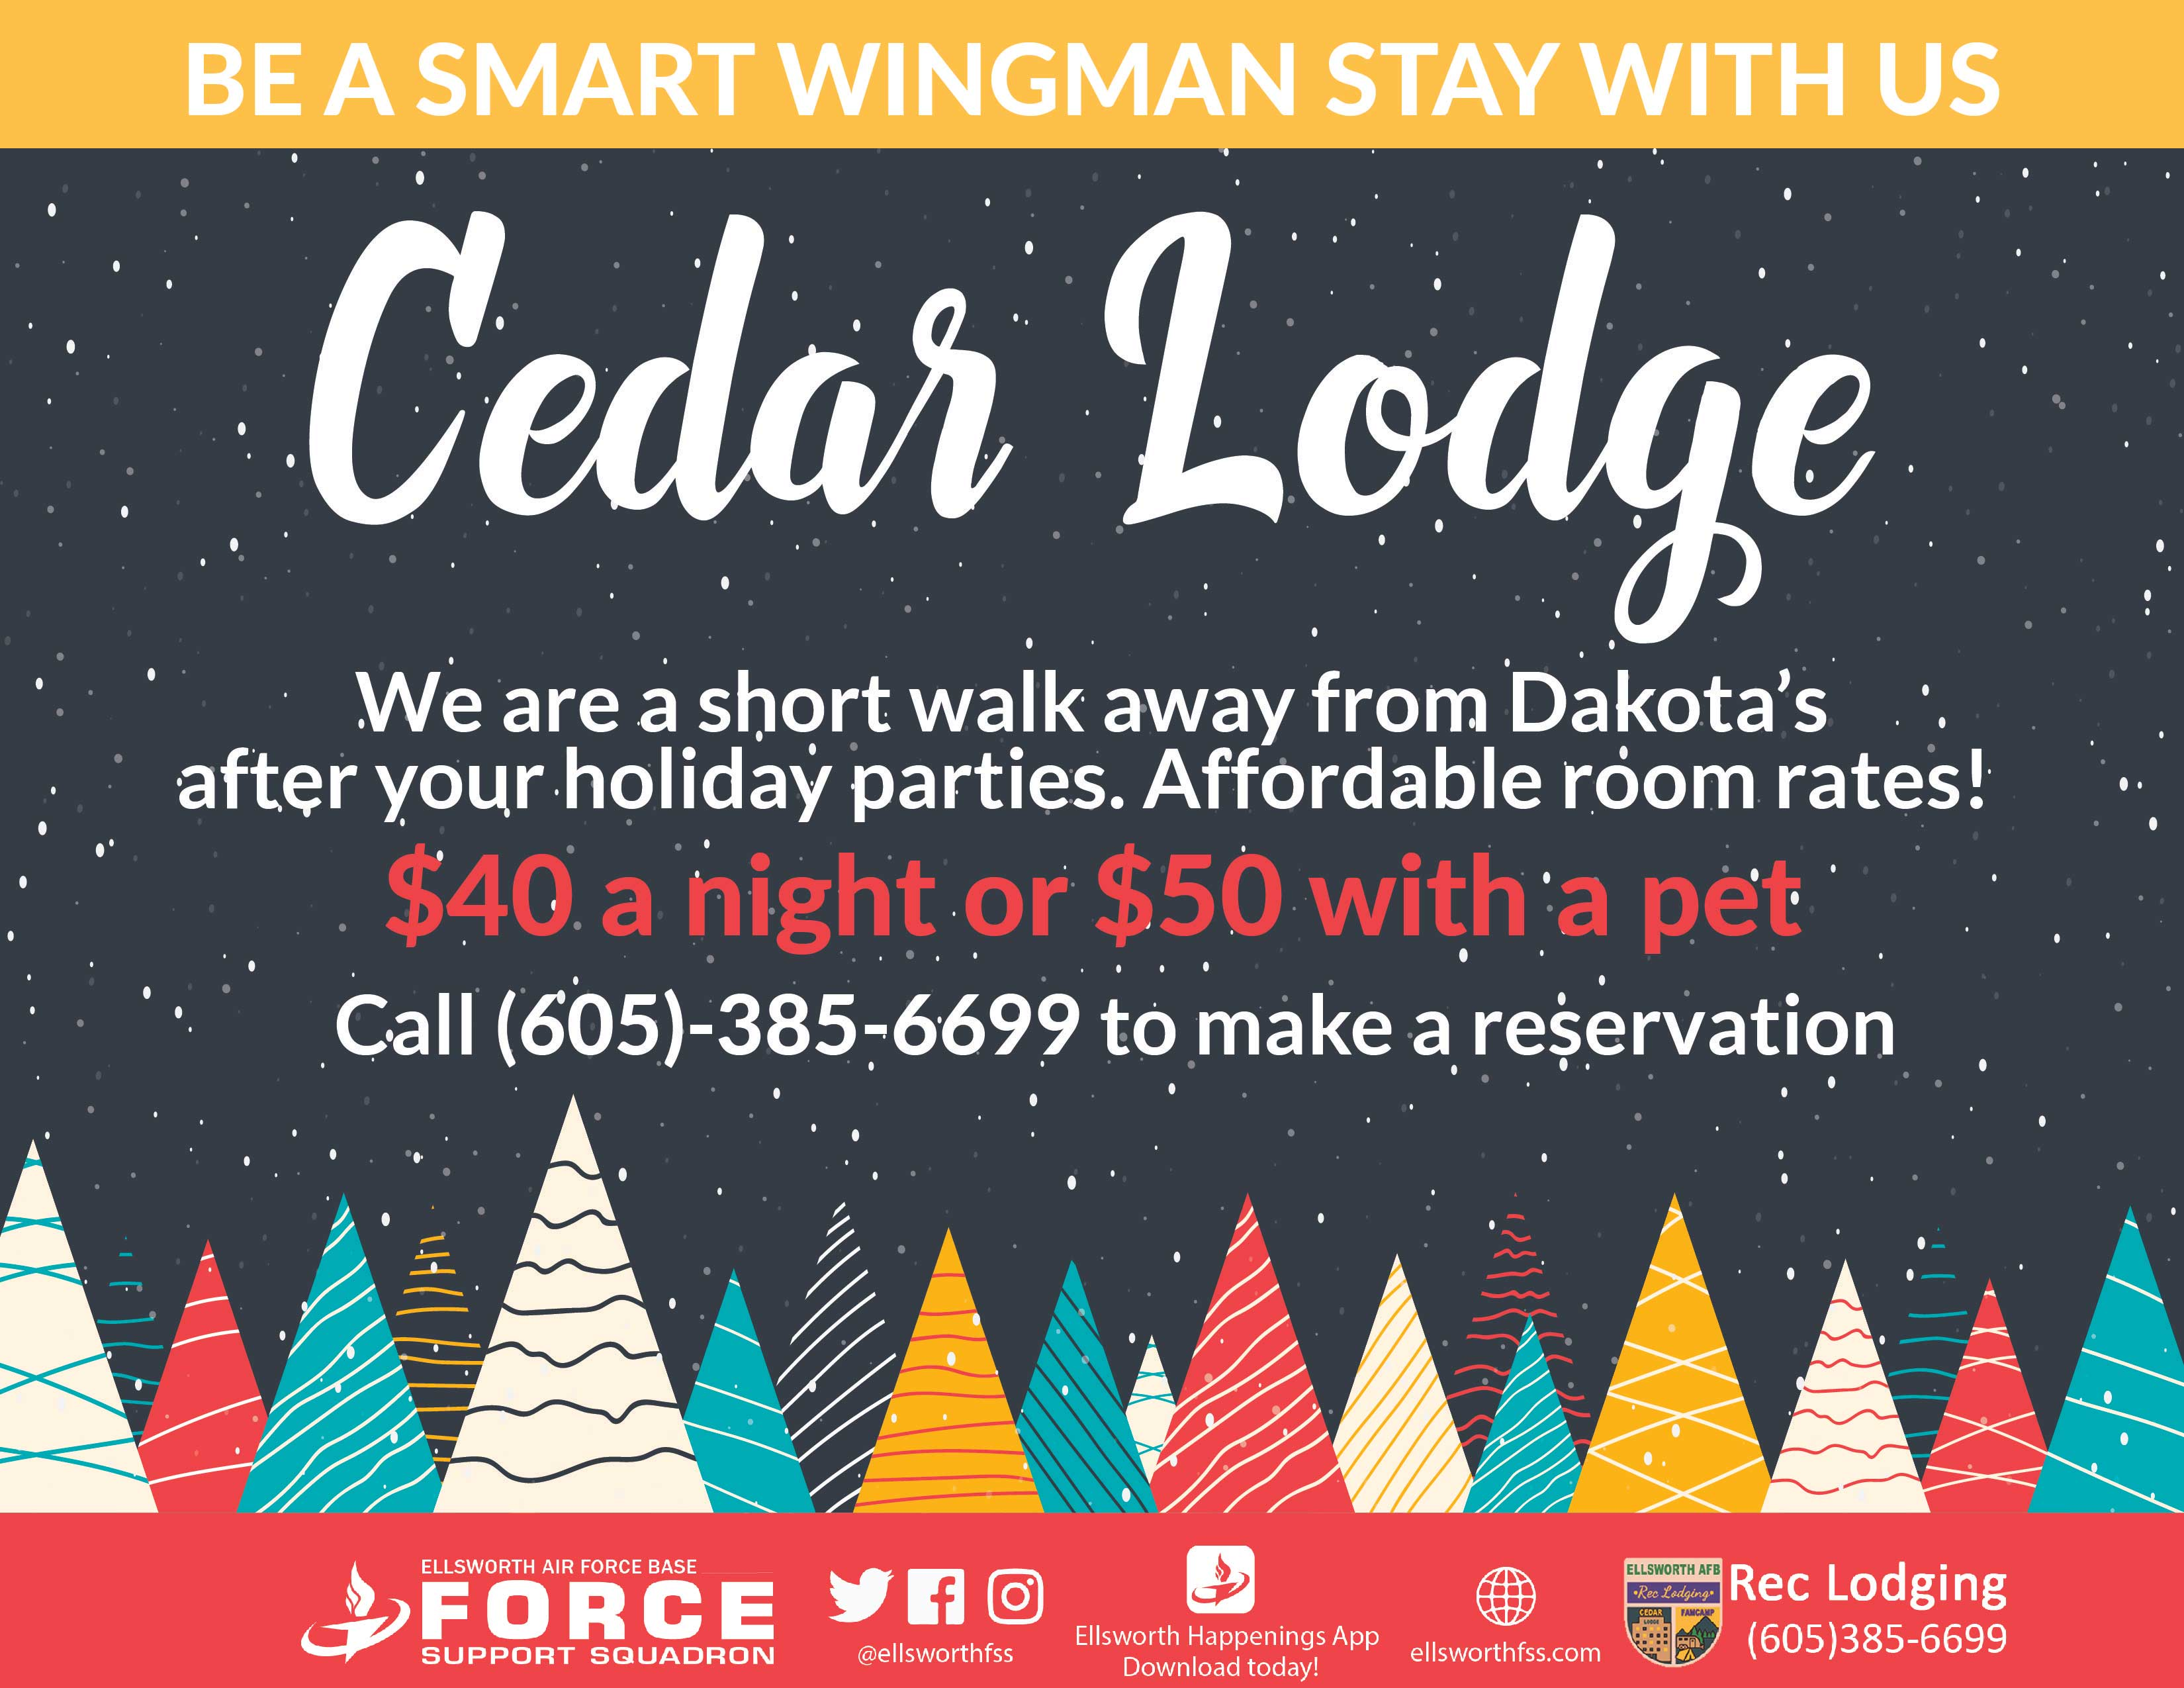 ODR Cedar Holiday Rooms Available 01 web